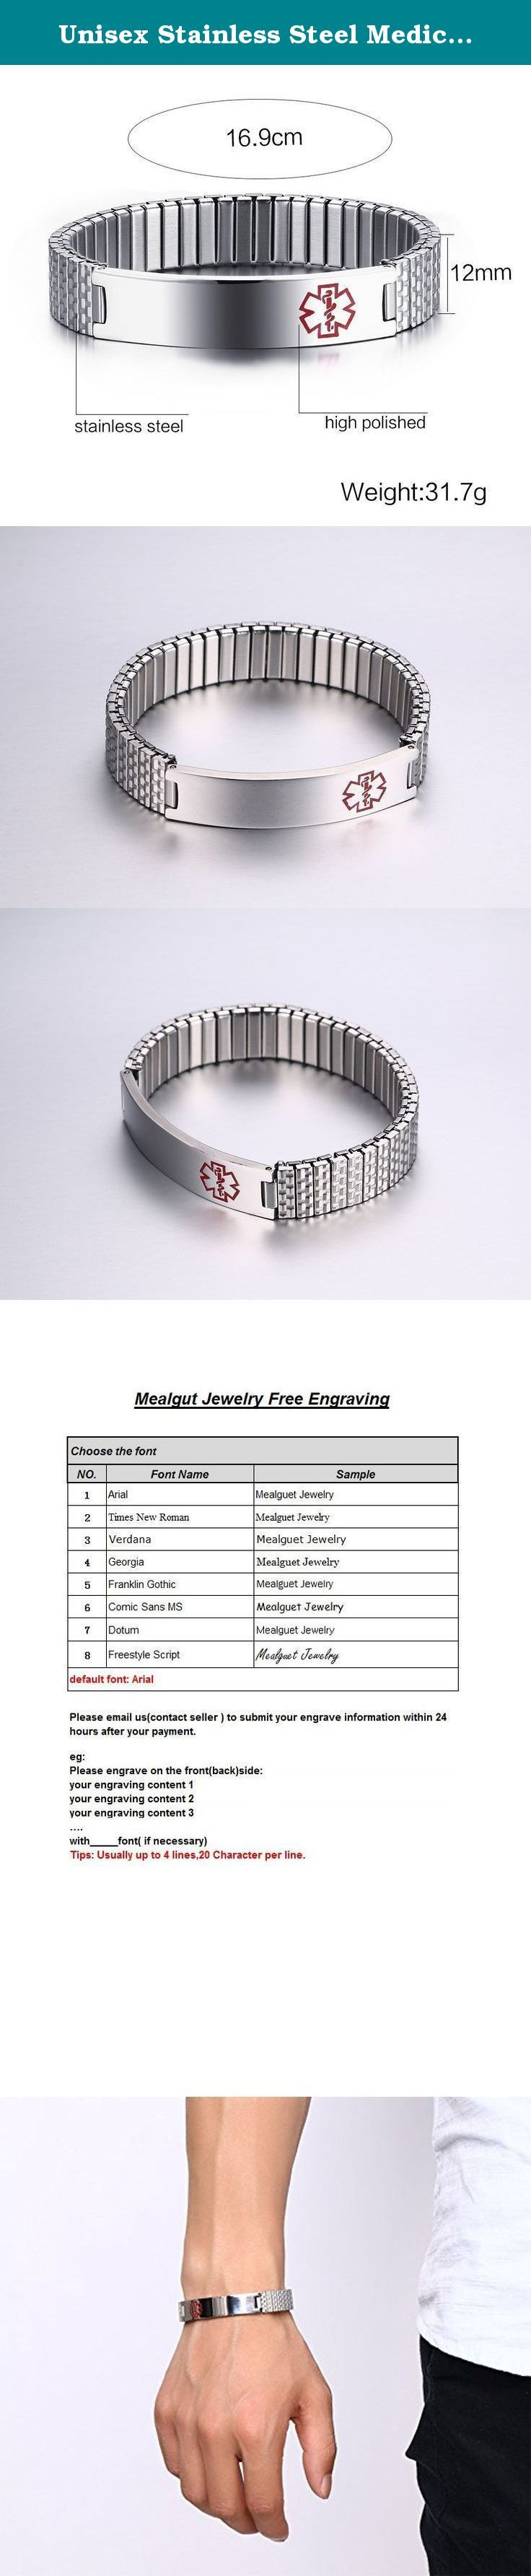 Unisex Stainless Steel Medical Alert ID Stretch Bracelet for Men and Women, Free Engraving. This Medical Bracelet are made of durable premium grade non allergenic stainless steel, it's sturdy and never fade! Common reasons for wearing a Medical Identification Bracelets are: - (1) Physical Allergies including Insect Bites, Pollens, Food Types - (2) Physical Conditions including Heart Conditions, Seizures, RNY Gastric Bypass, Asthma - (3) Medical Allergies including Medicines, Latex…